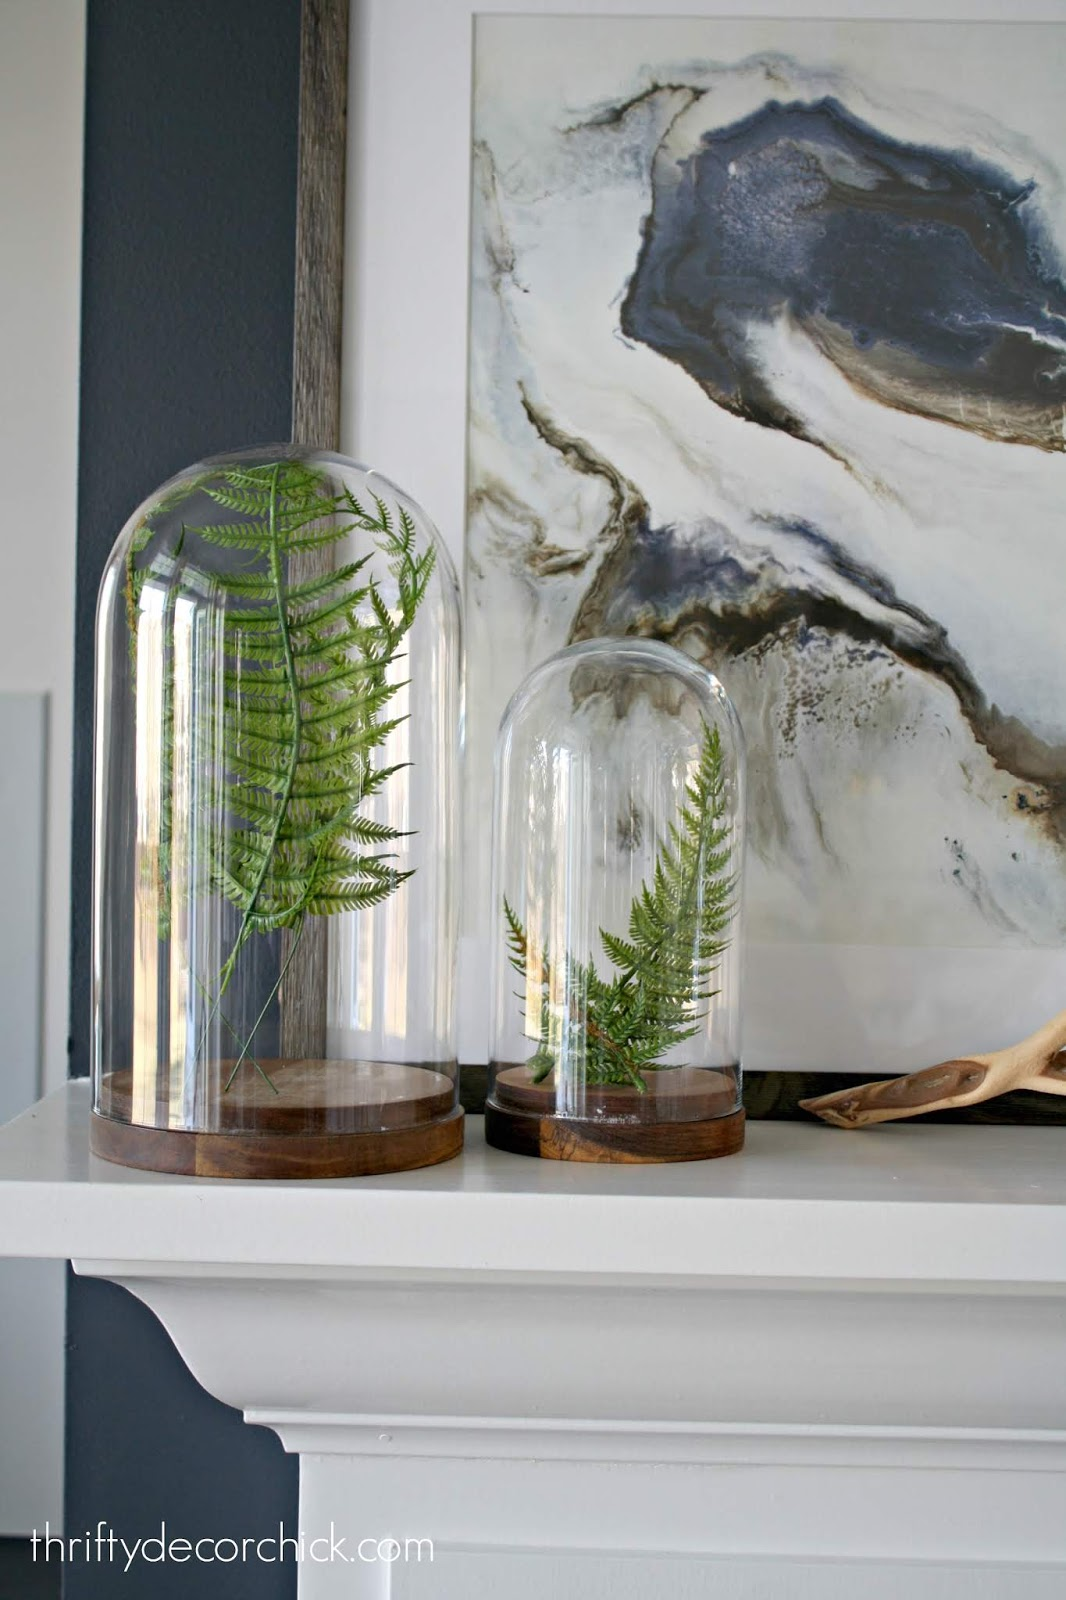 how to decorate with glass cloches